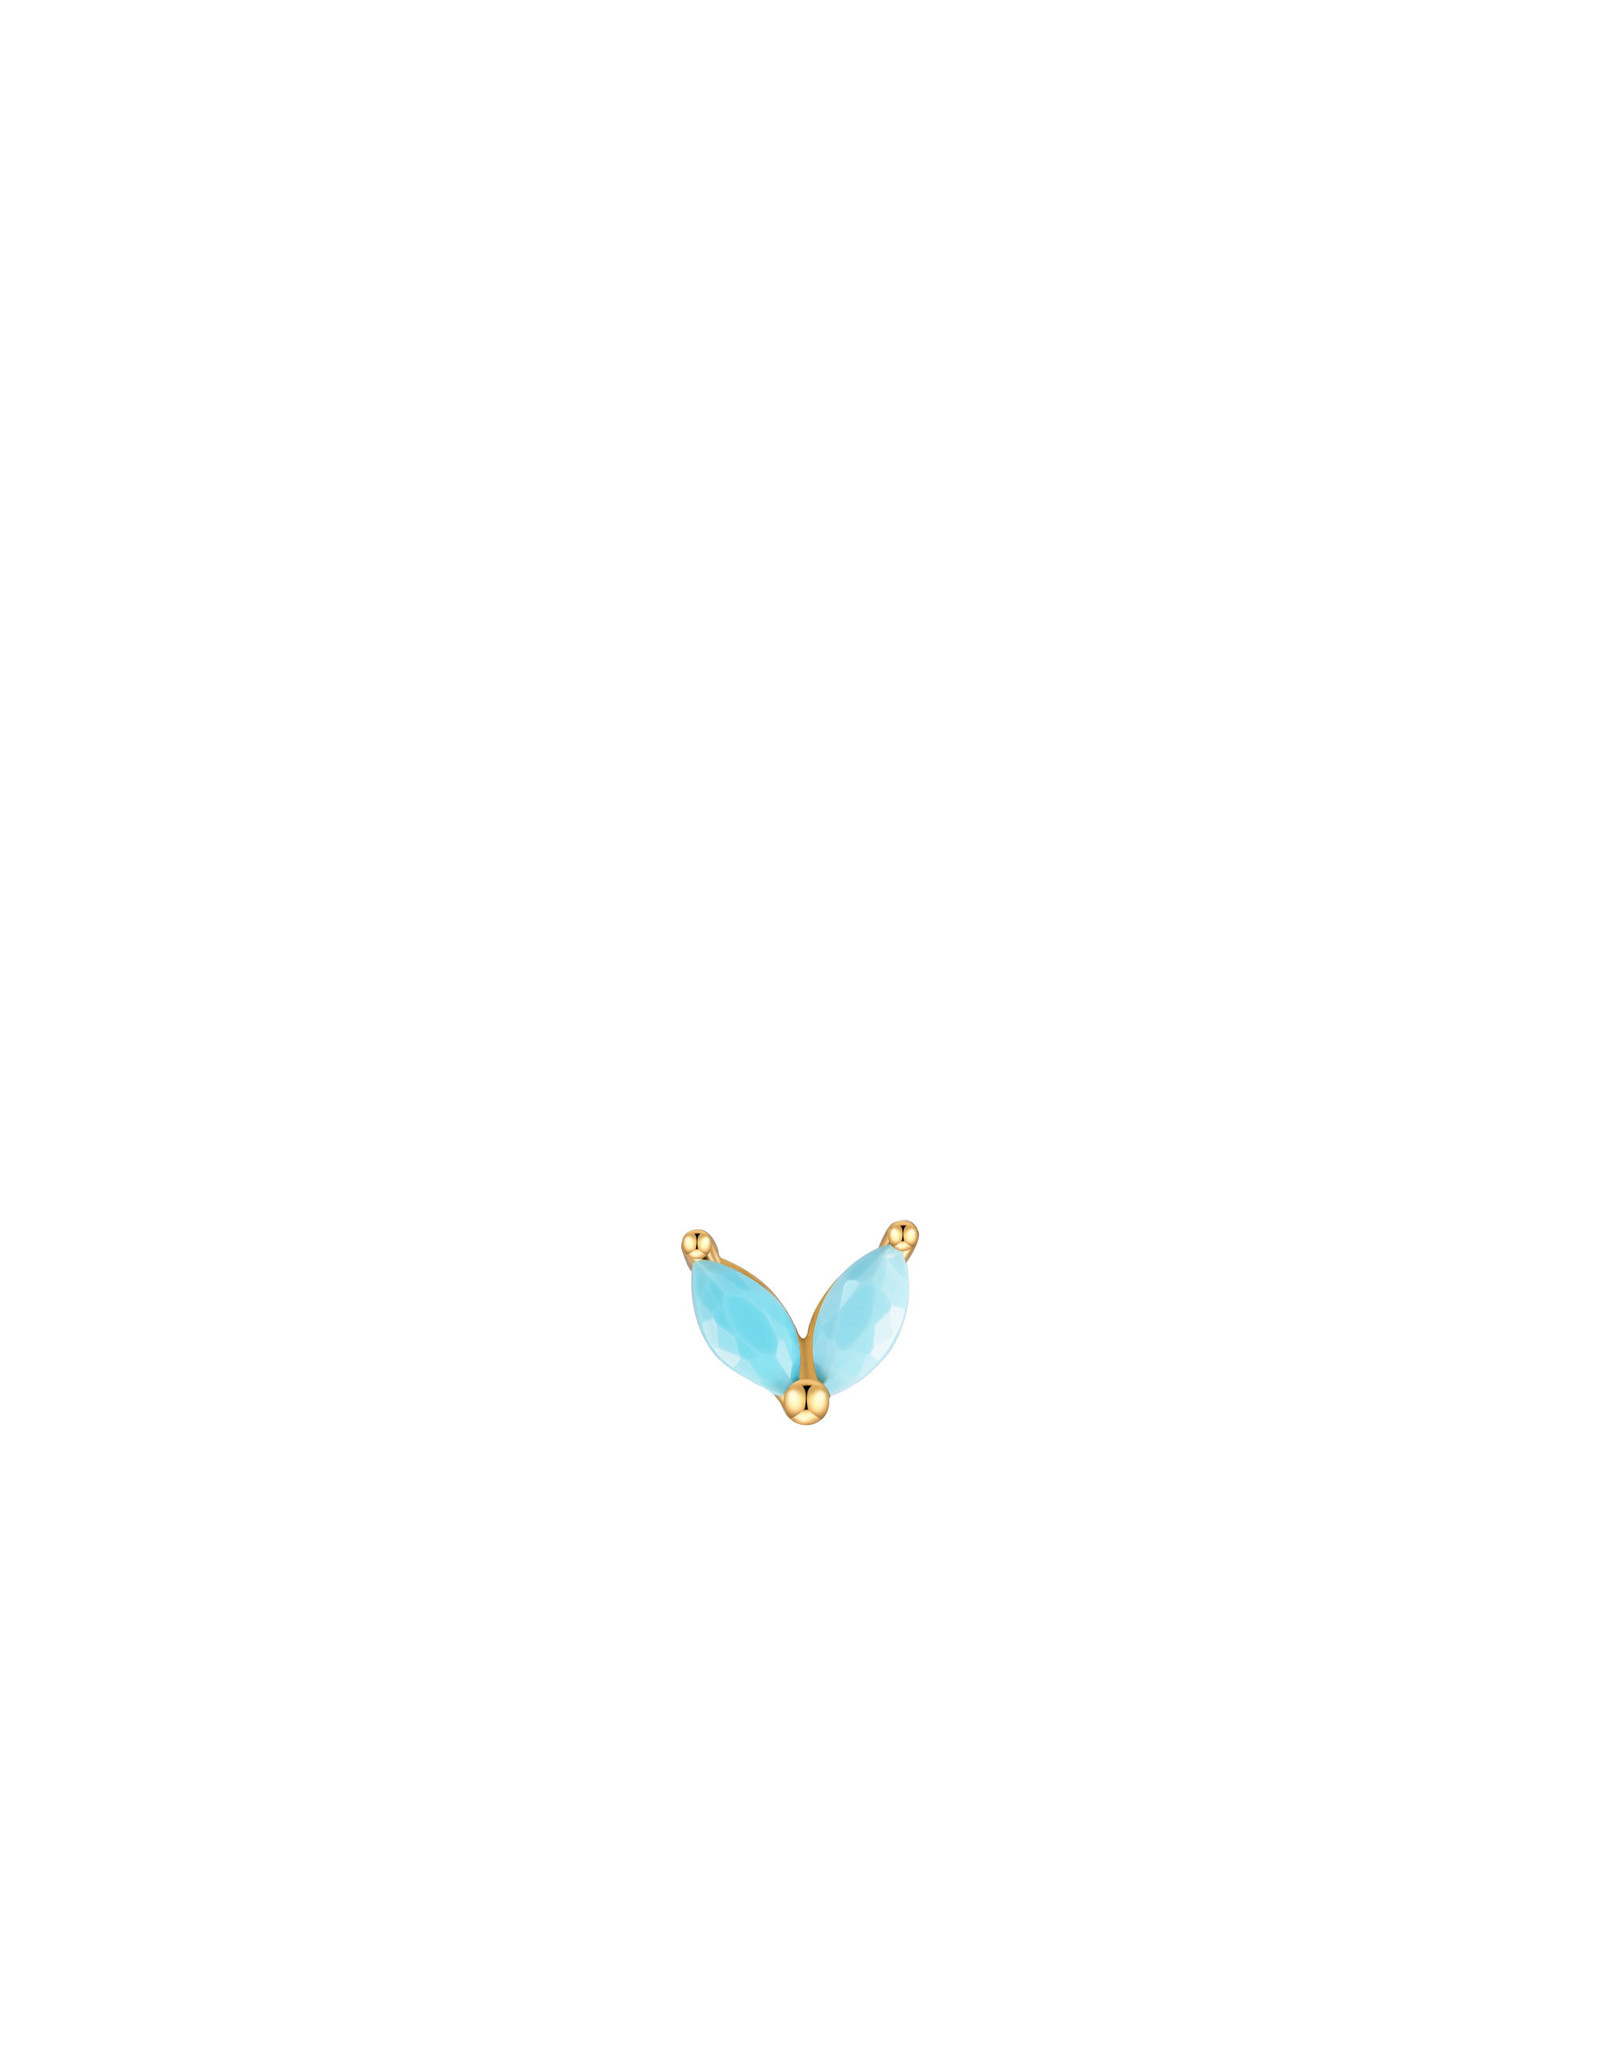 EARRING JOLIE DOUBLE LEAF TURQUOISE